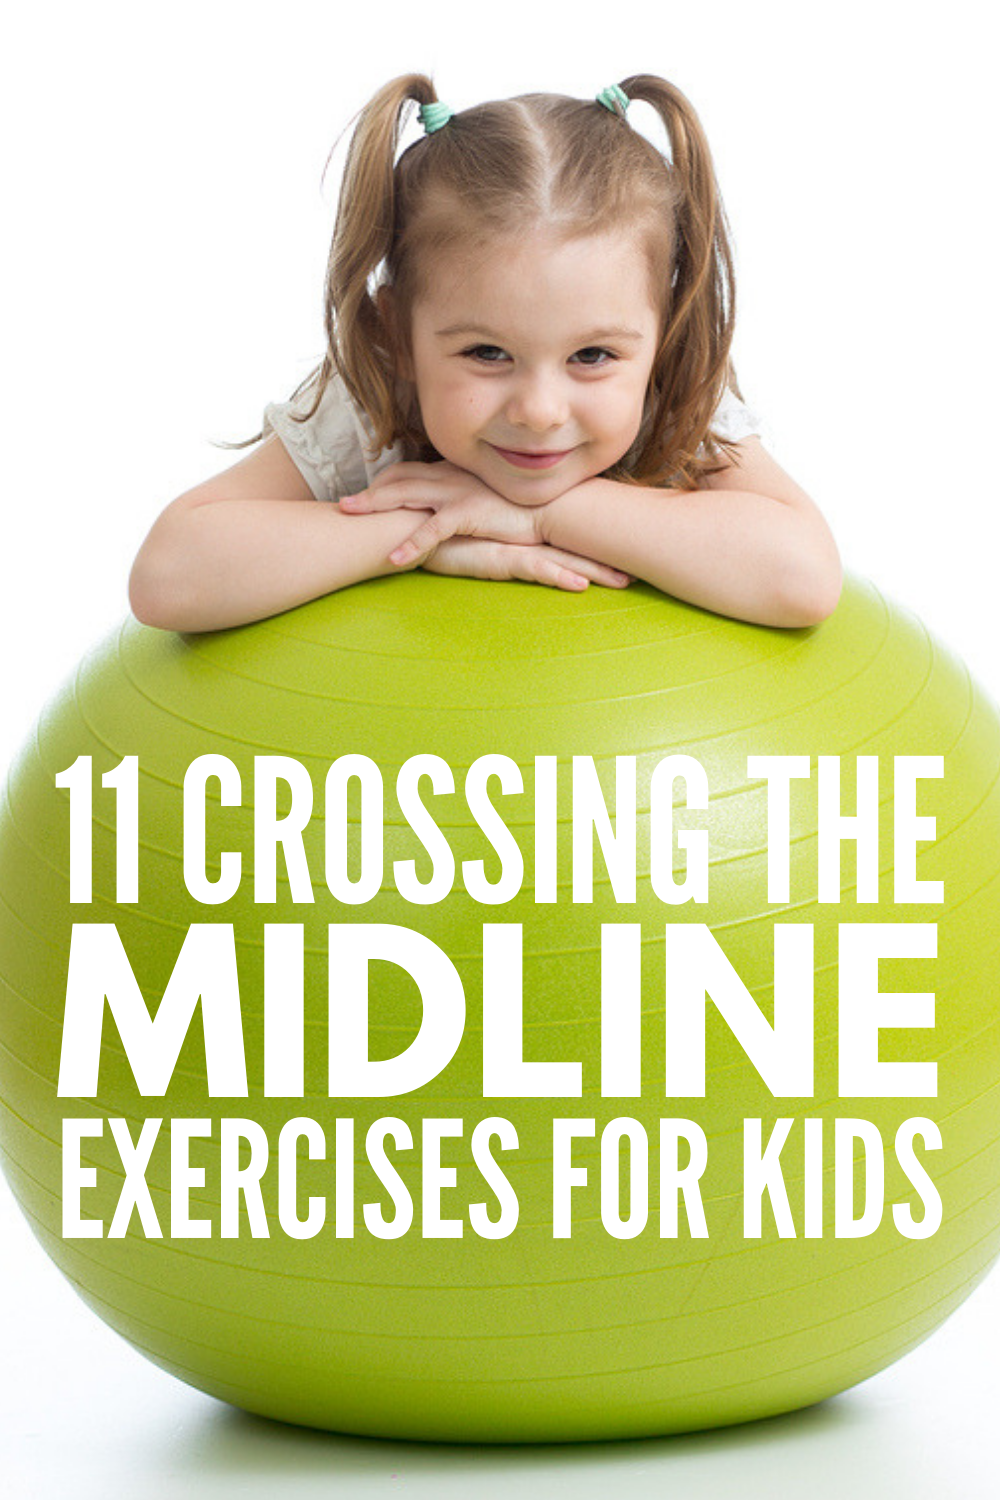 11 Crossing the Midline Activities for Kids | Perfect for toddlers, for kids in preschool, and for